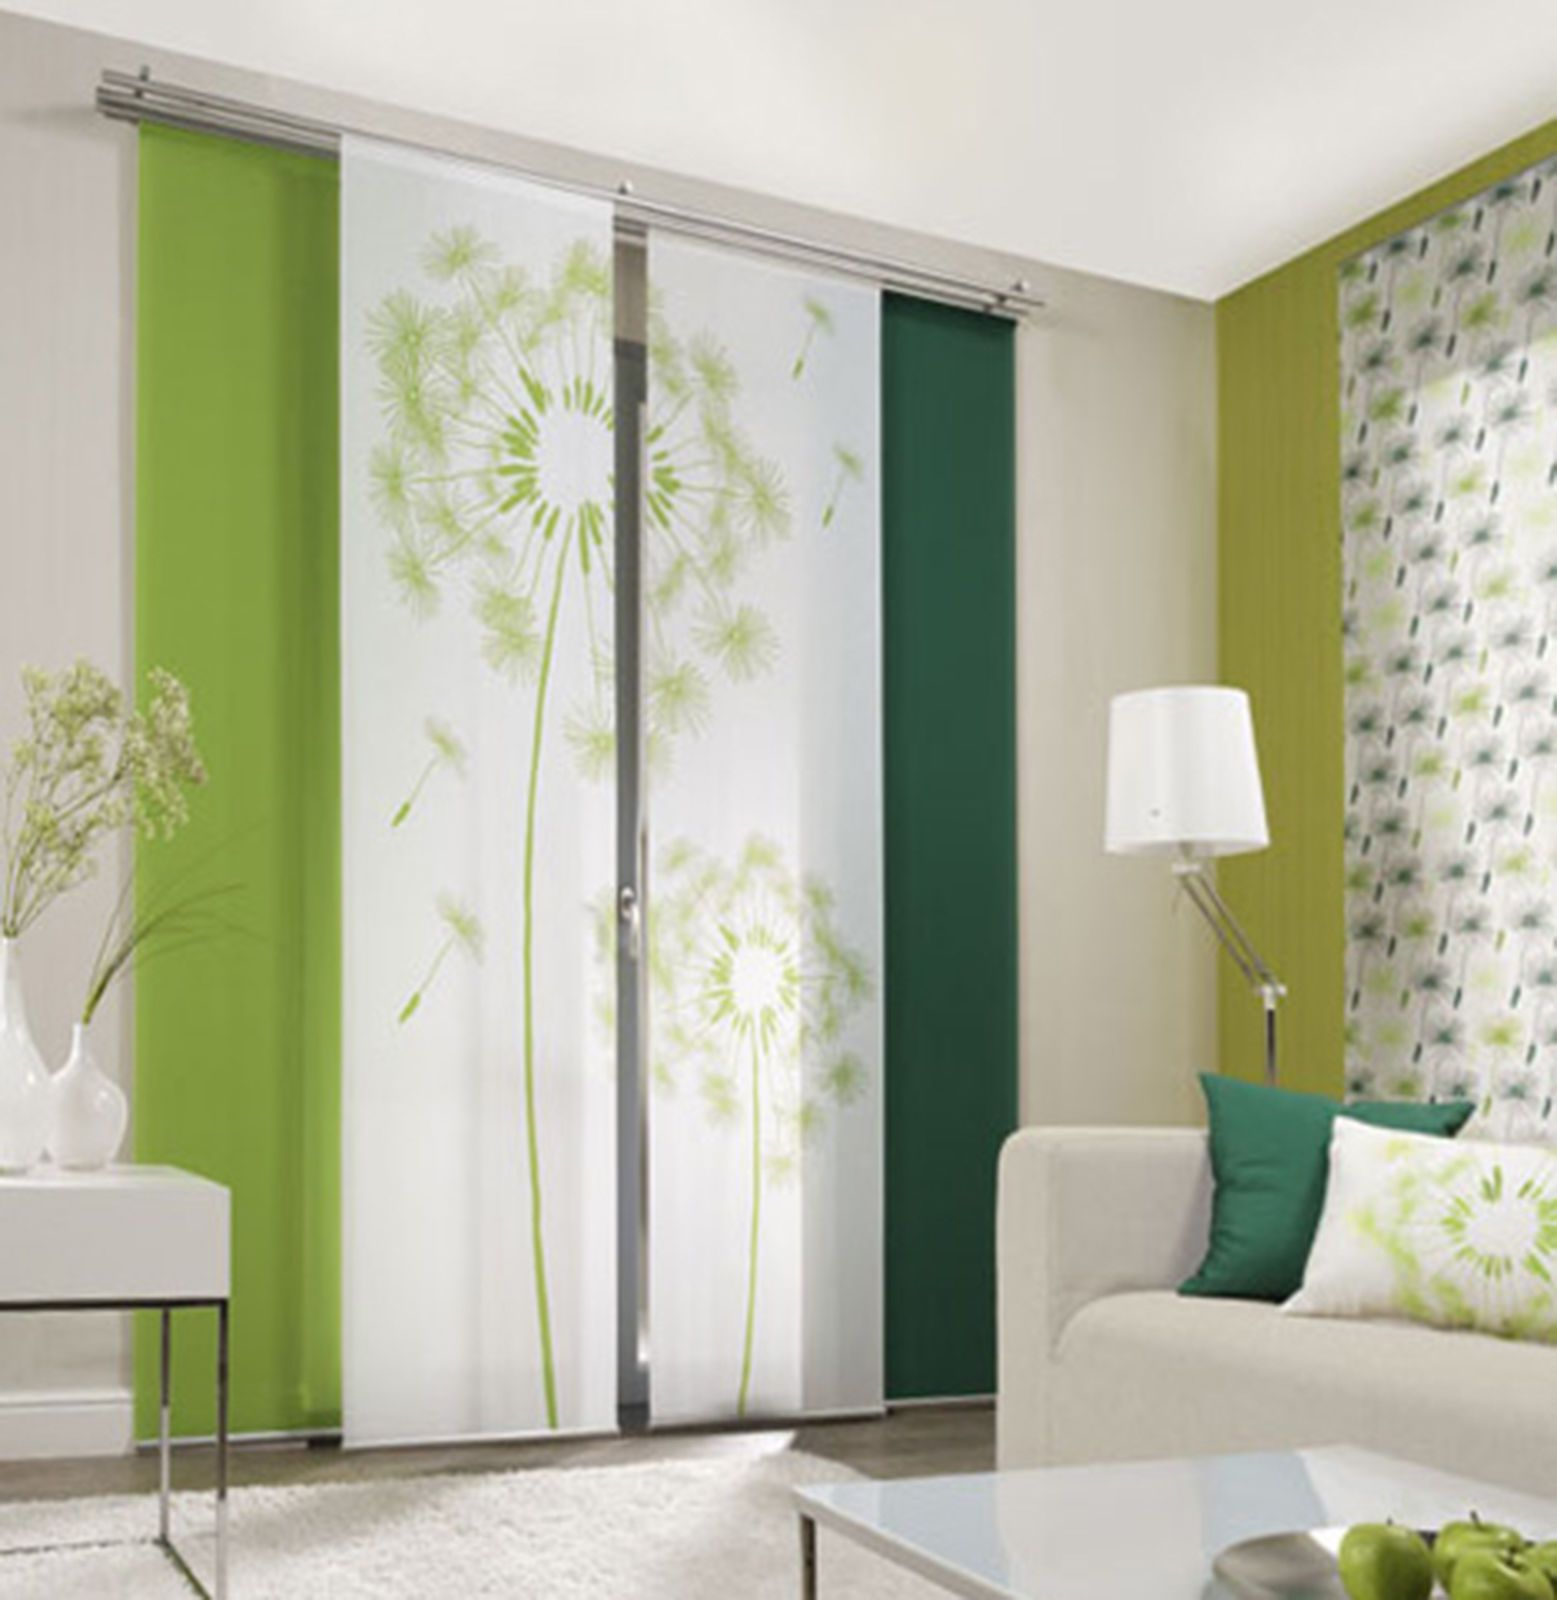 Dandelion Allover 1 Curtain Panel Room Divider Blinds